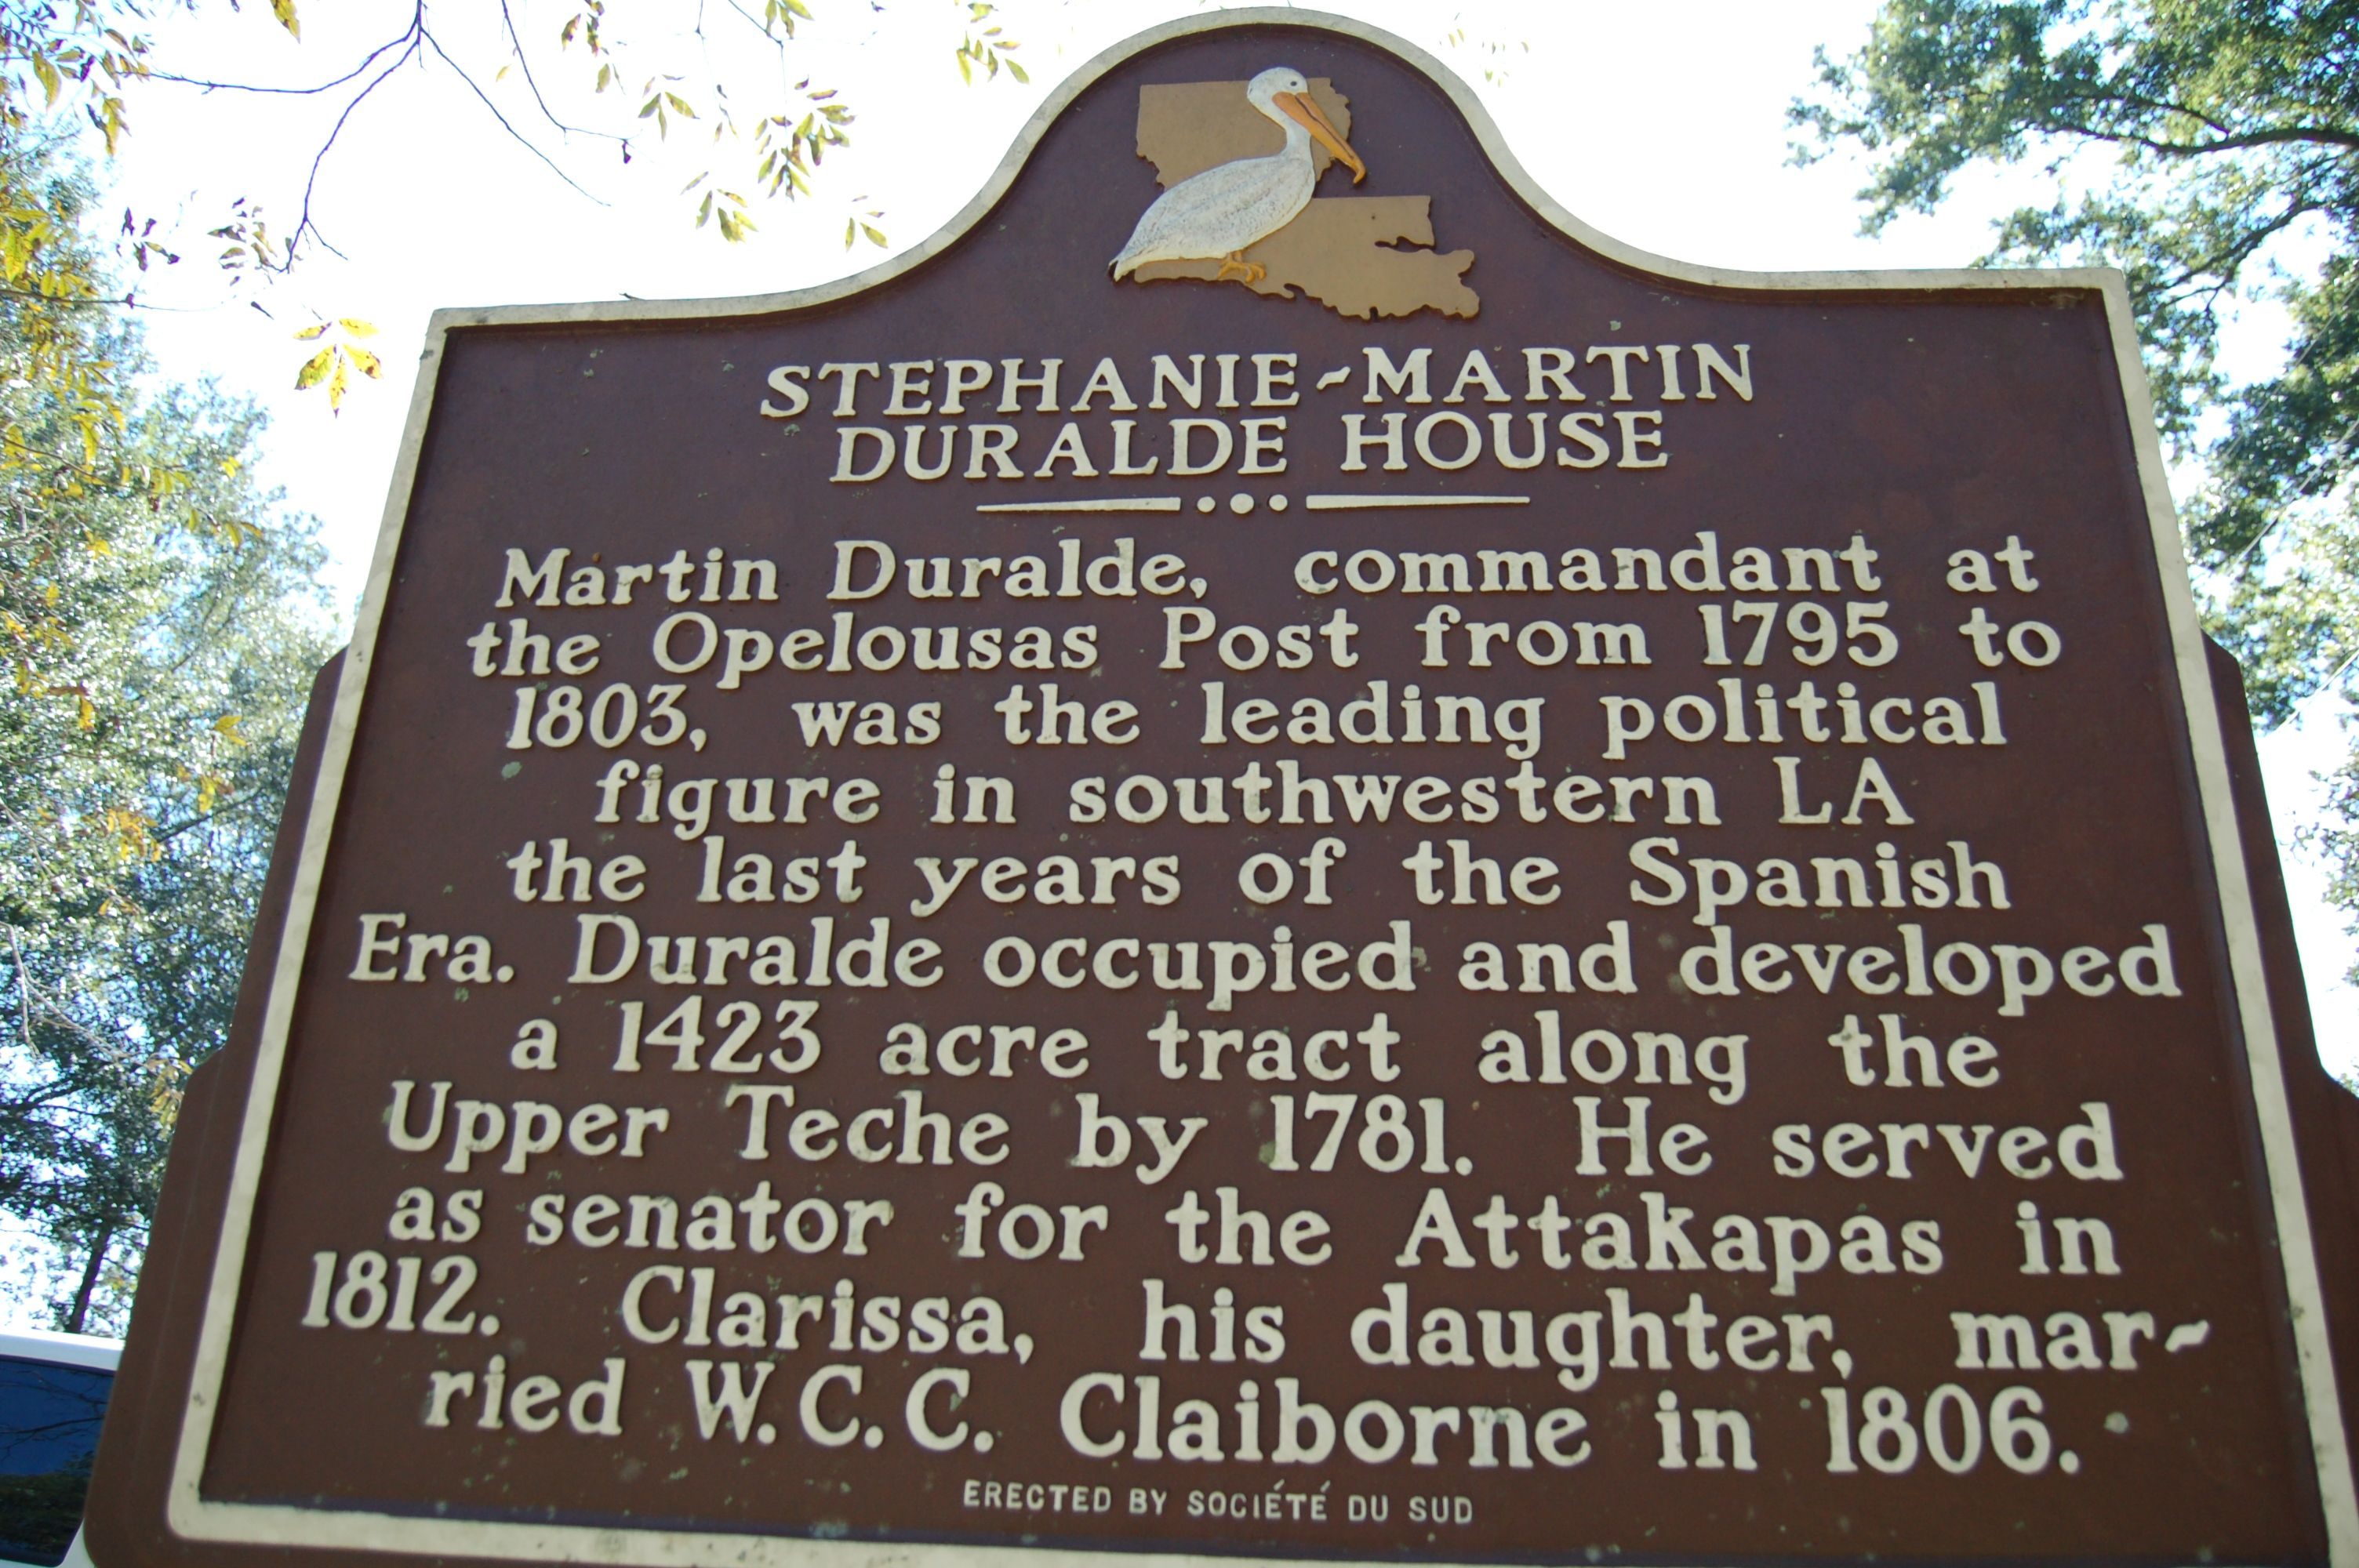 Pin on Louisiana Historical Markers and Historical Places